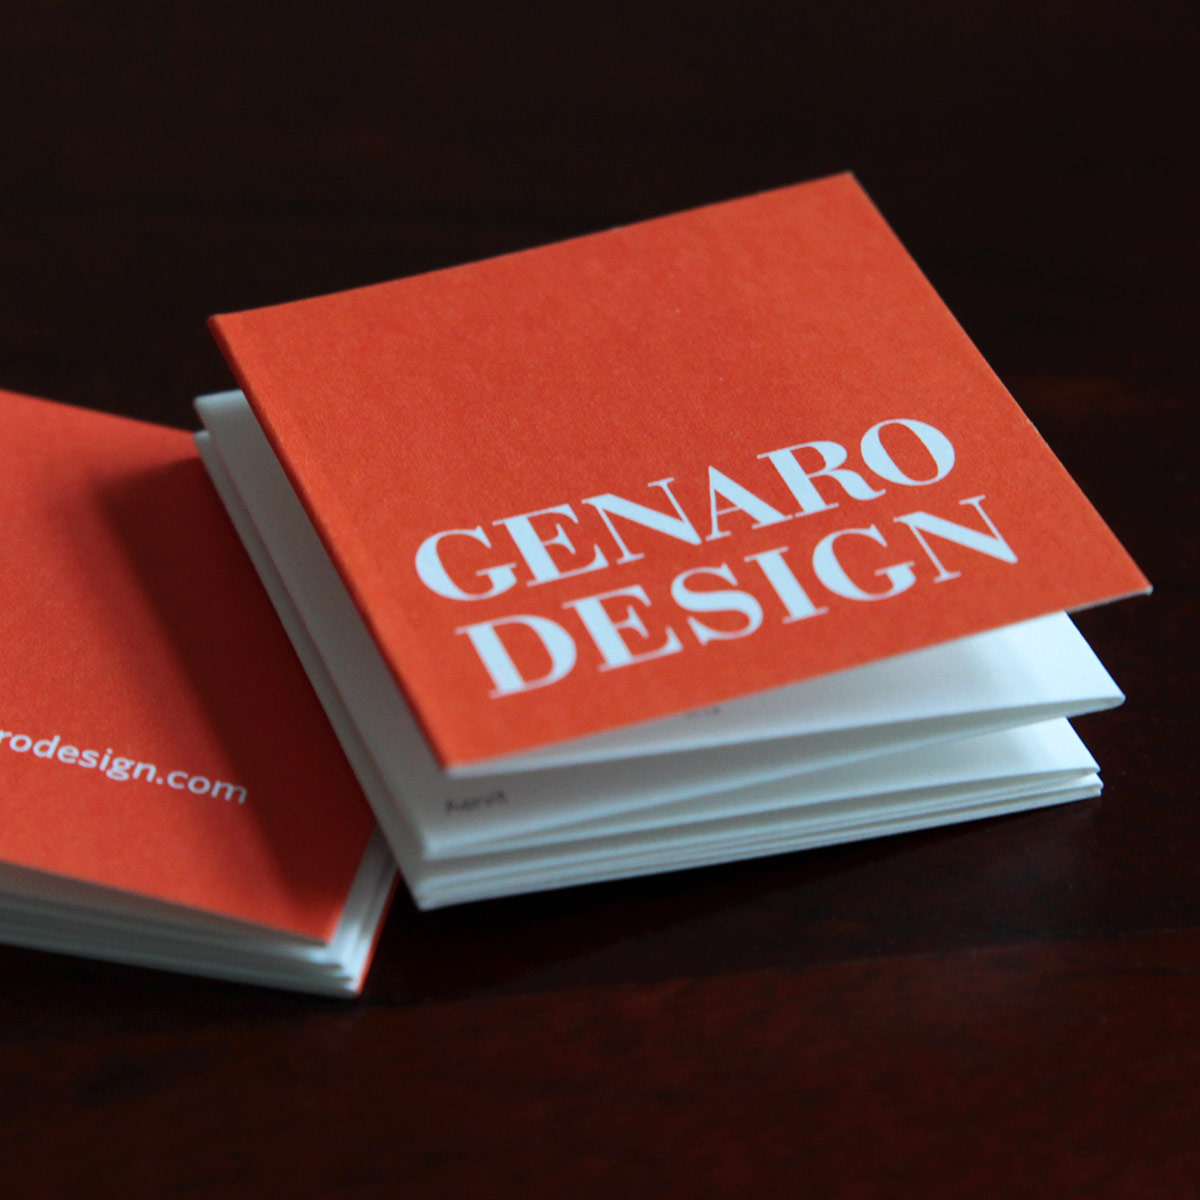 Genaro Design leave behind